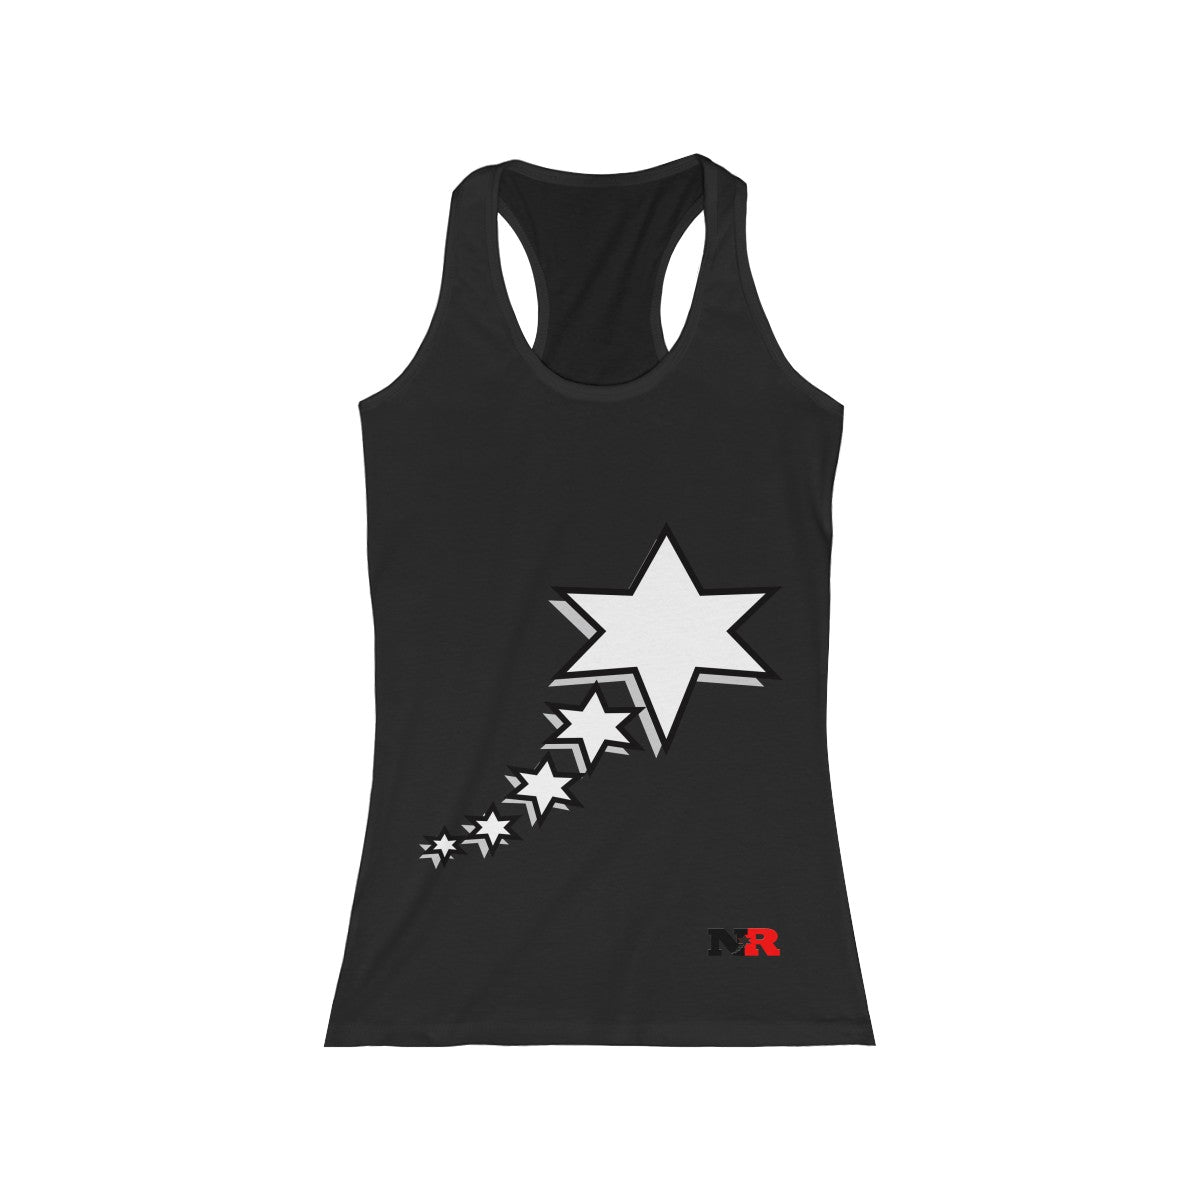 Women's Racerback Tank - 6 Points 5 Stars (White)